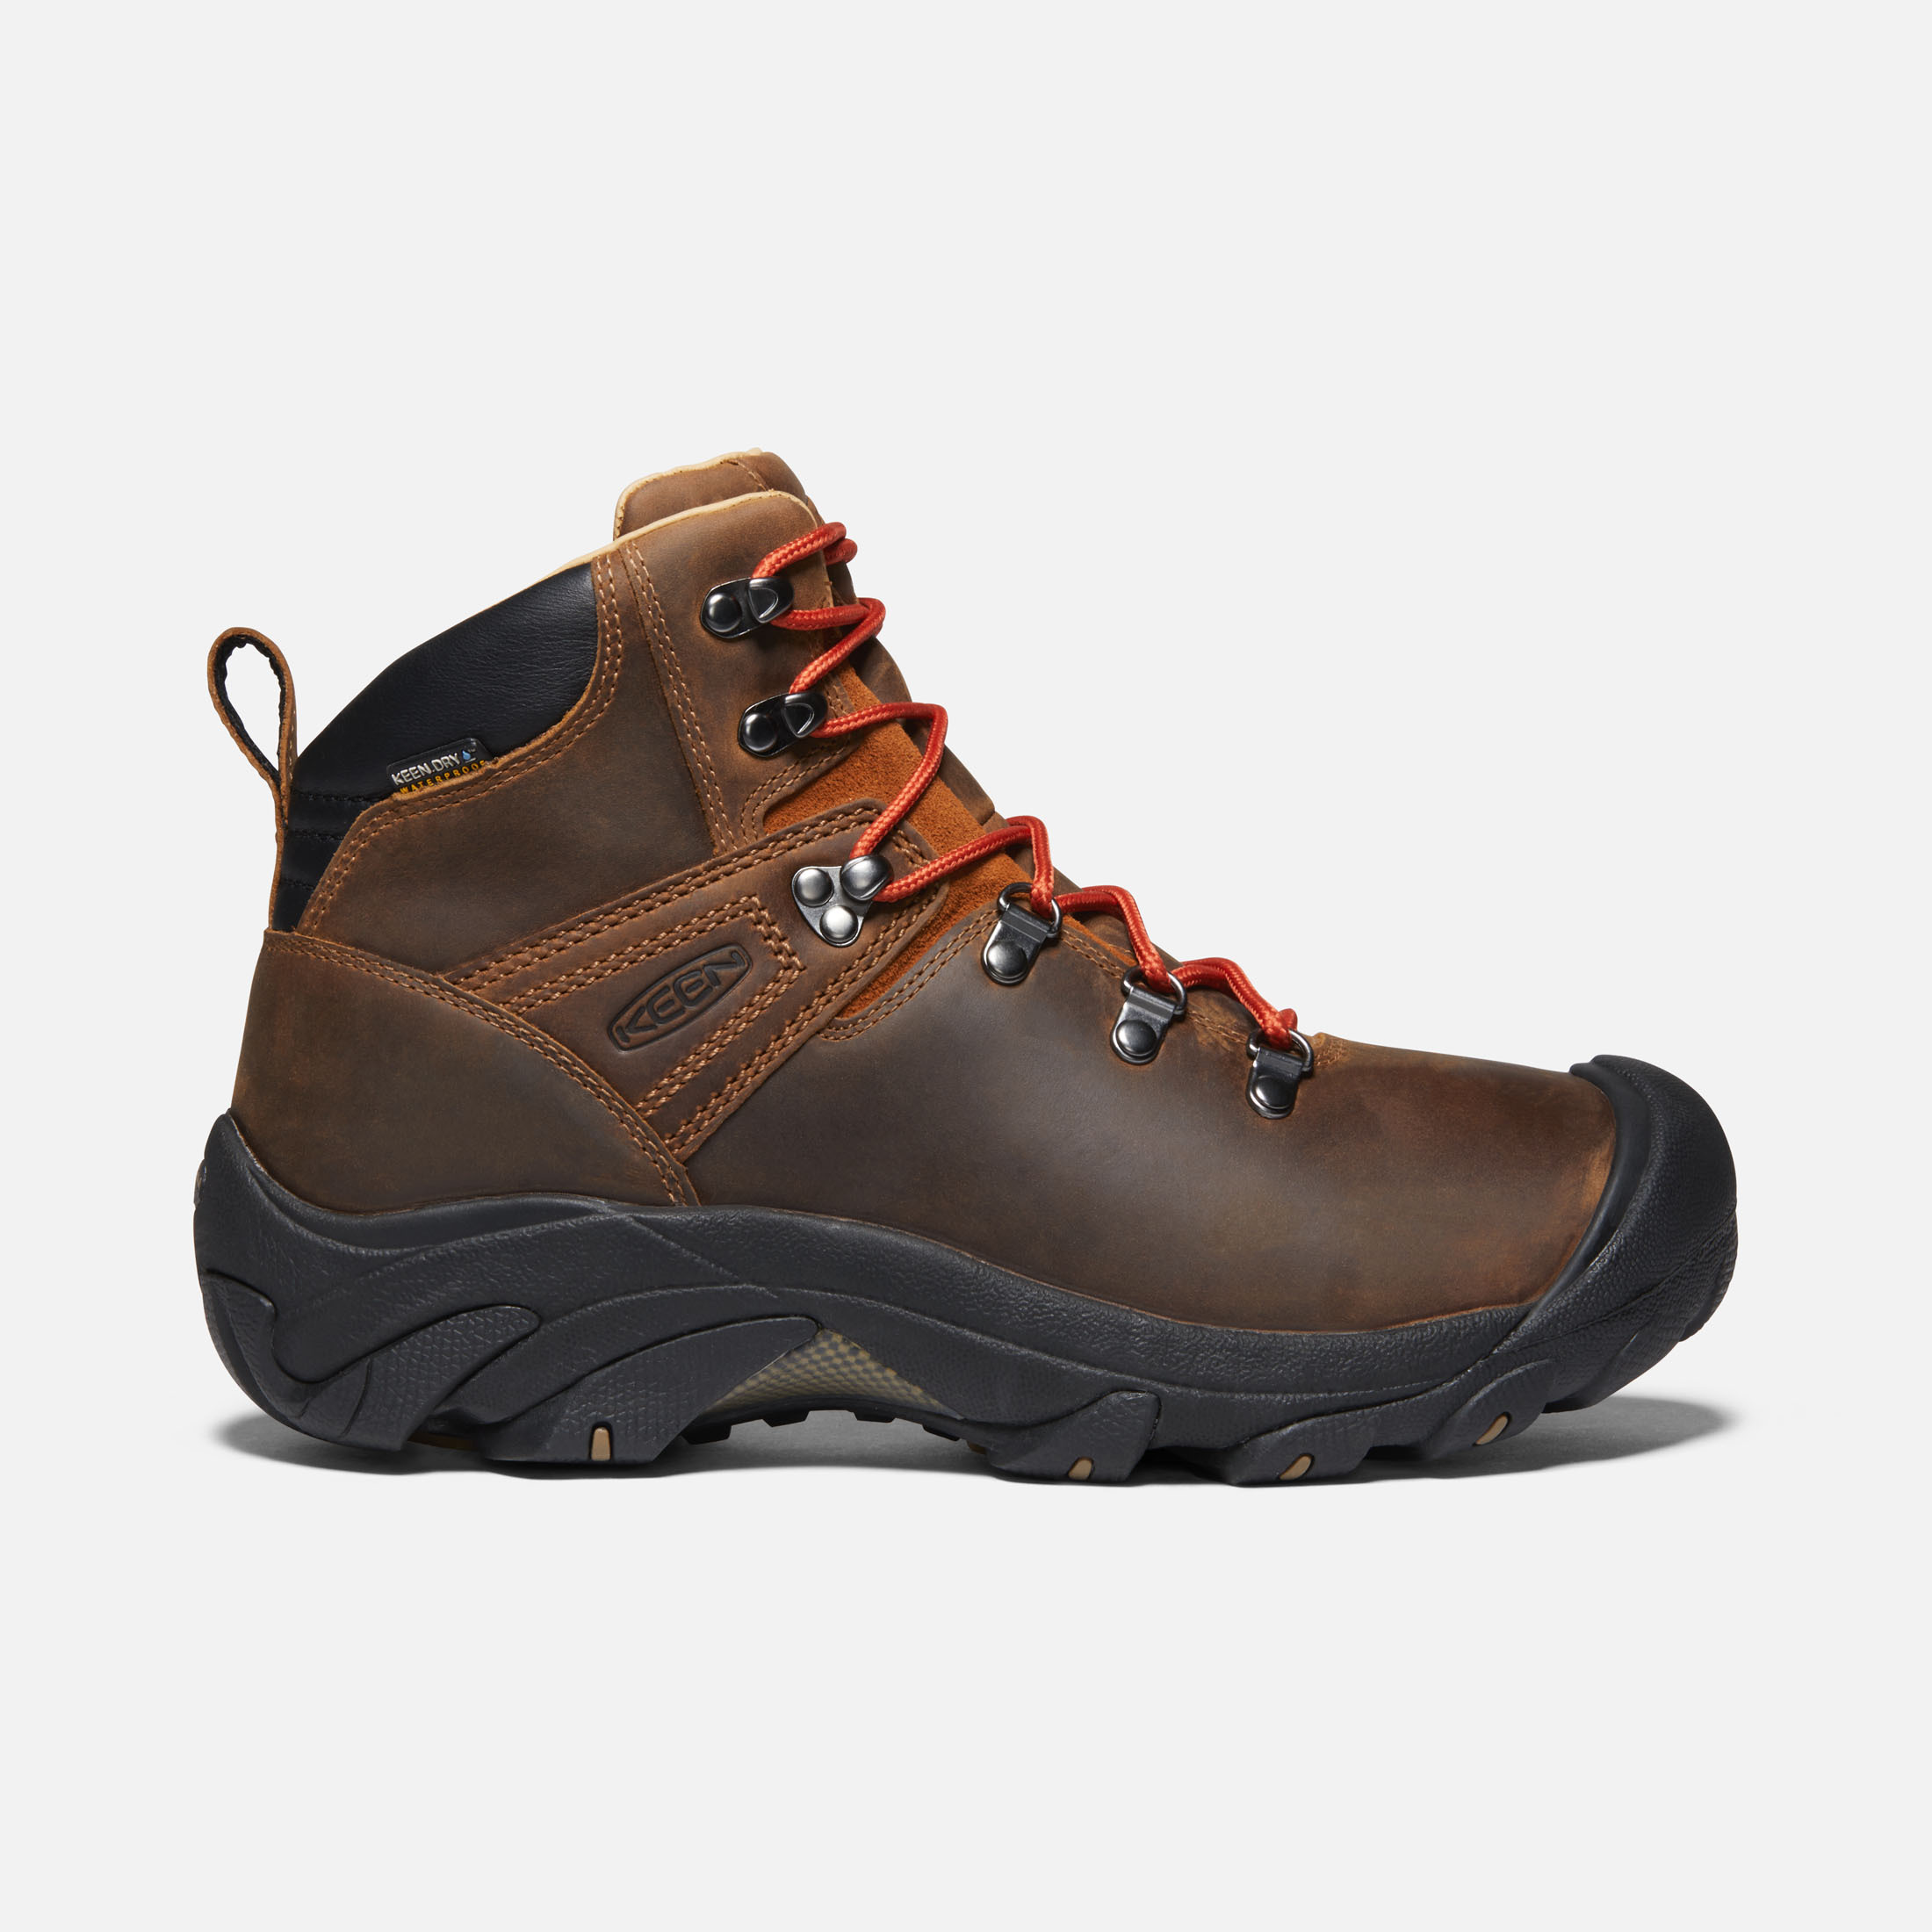 Keen Mens Pyrenees-m Hiking Boot